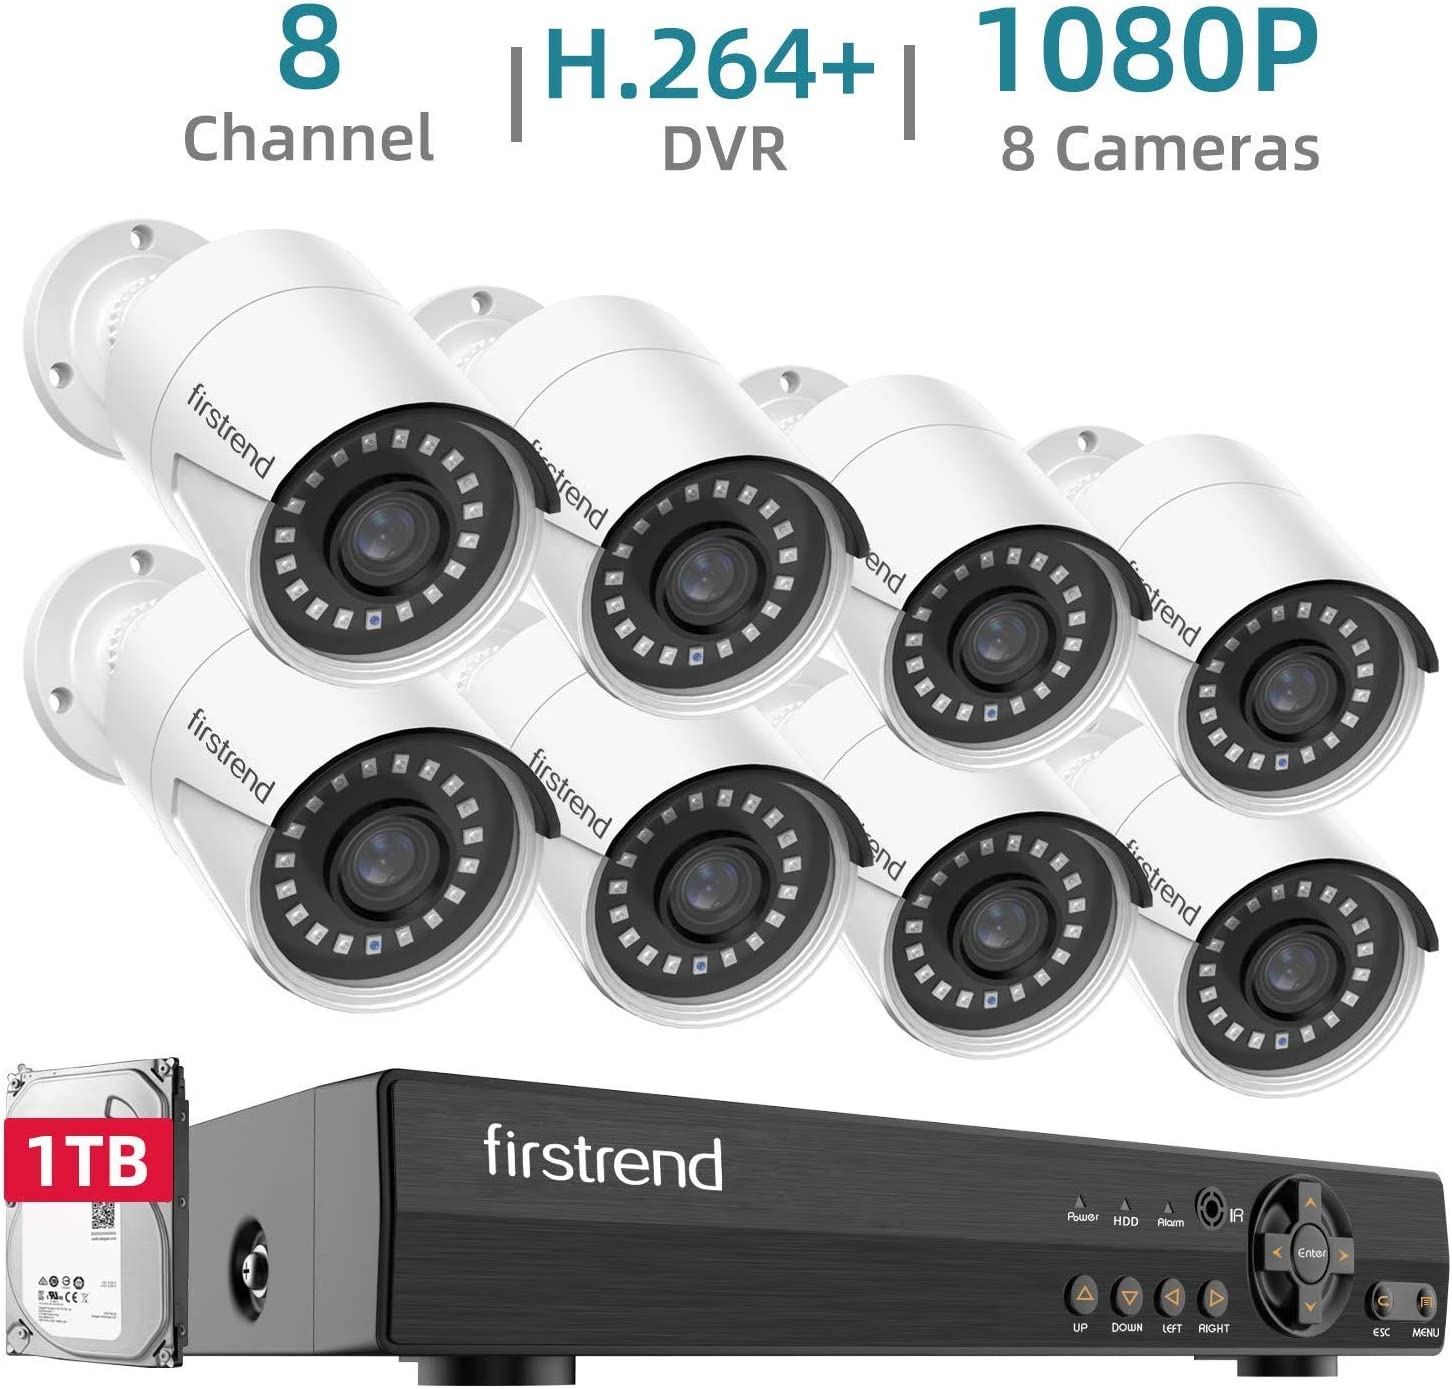 Firstrend 1080P Home Security Cameras System with 8PCS Video Surveillance Cameras and 1TB Hard Drive Outdoor Indoor DVR CCTV Systems Free App Night Vision Motion Detection